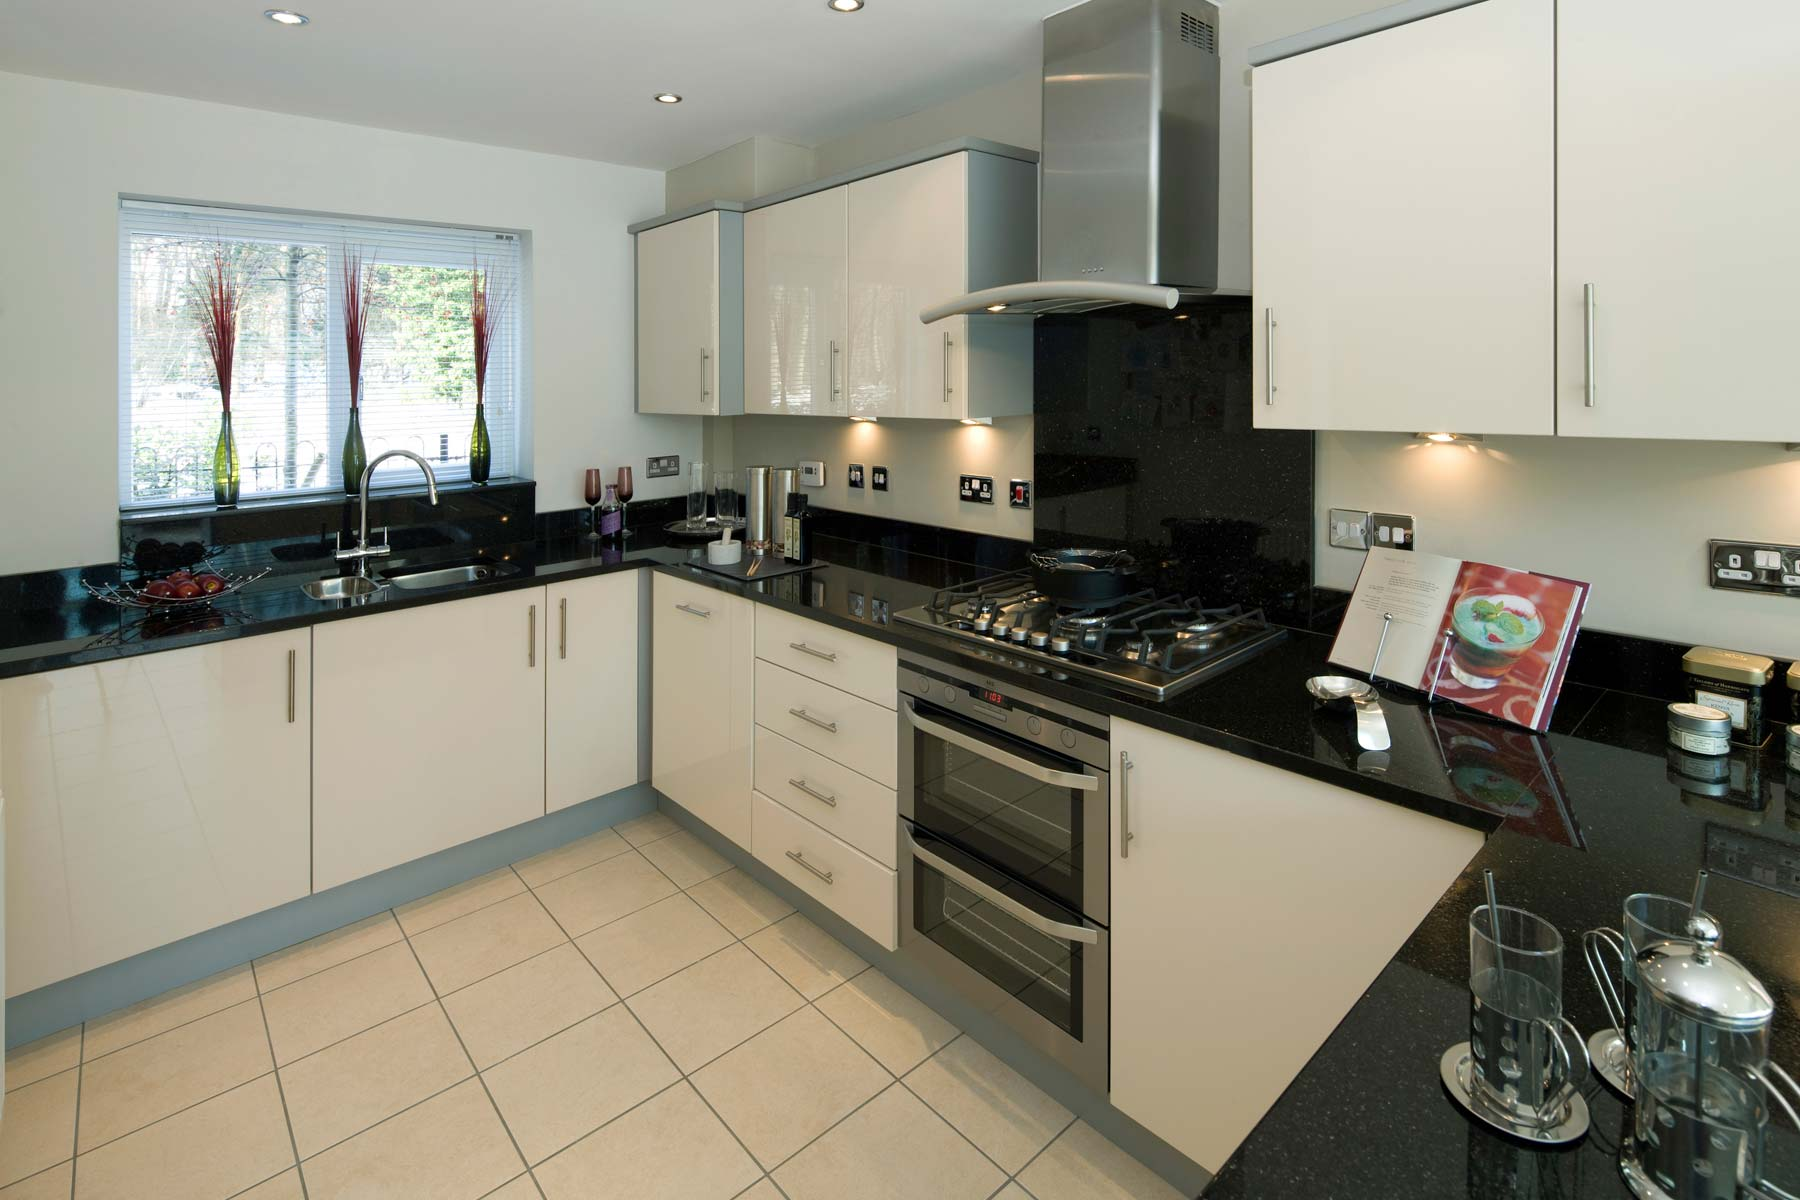 A Typical Taylor Wimpey Showhome Kitchen Finsbury Leybourne (7)